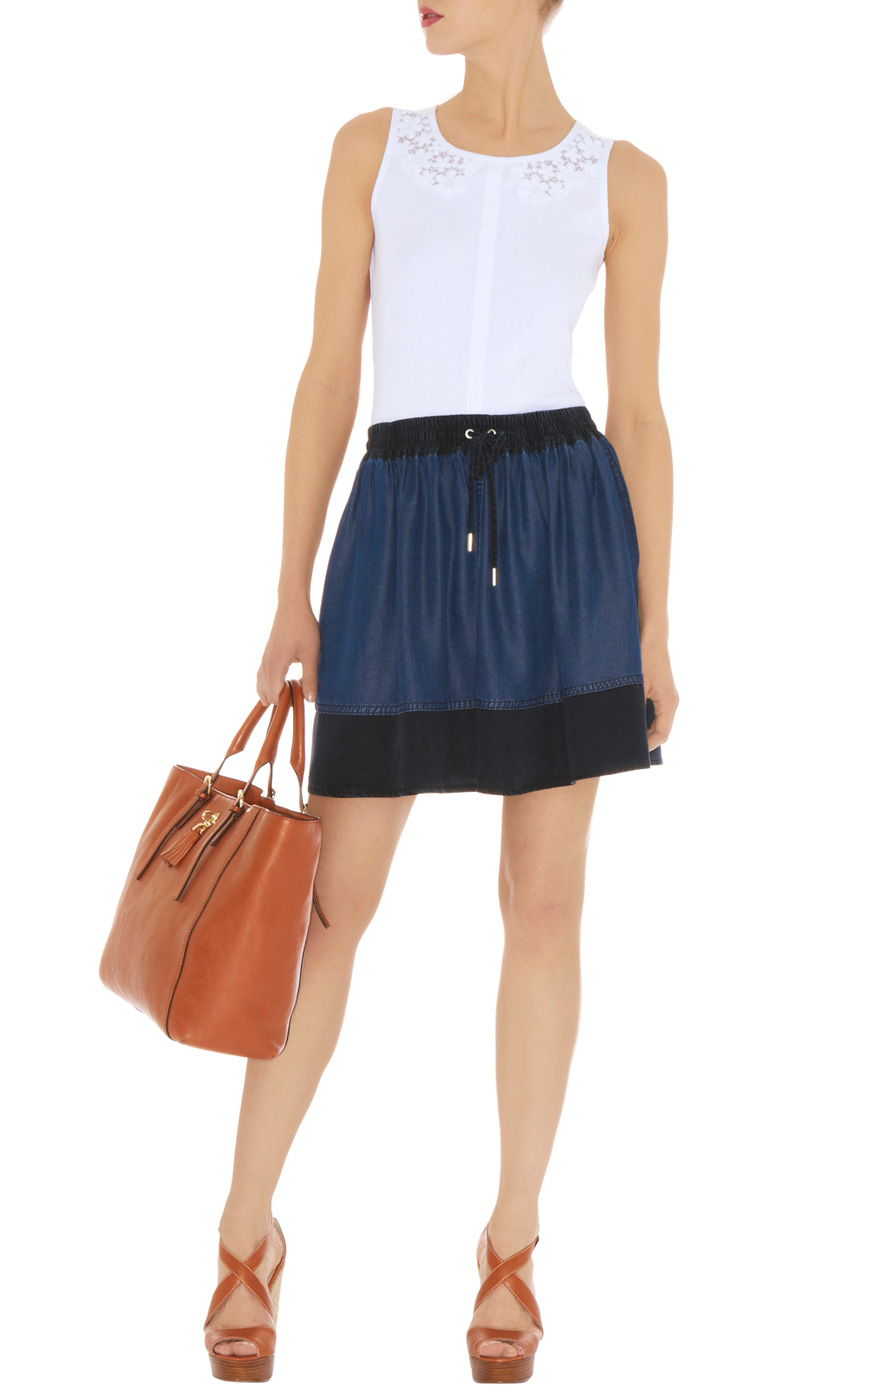 ANNE WEYBURN La Redoute Womens Embroidered Full Skirt In Draping Denim. Sold by La Redoute. $ trickytrydown2.tk Skirt Bohemia Denim Skirt. trickytrydown2.tk Women Denim Skirt Knee Length High Waist Pencil Skirt. Sold by 2 Sellers. $ Bluberry Denim Bluberry Women's Pencil-cut Denim Skirt.